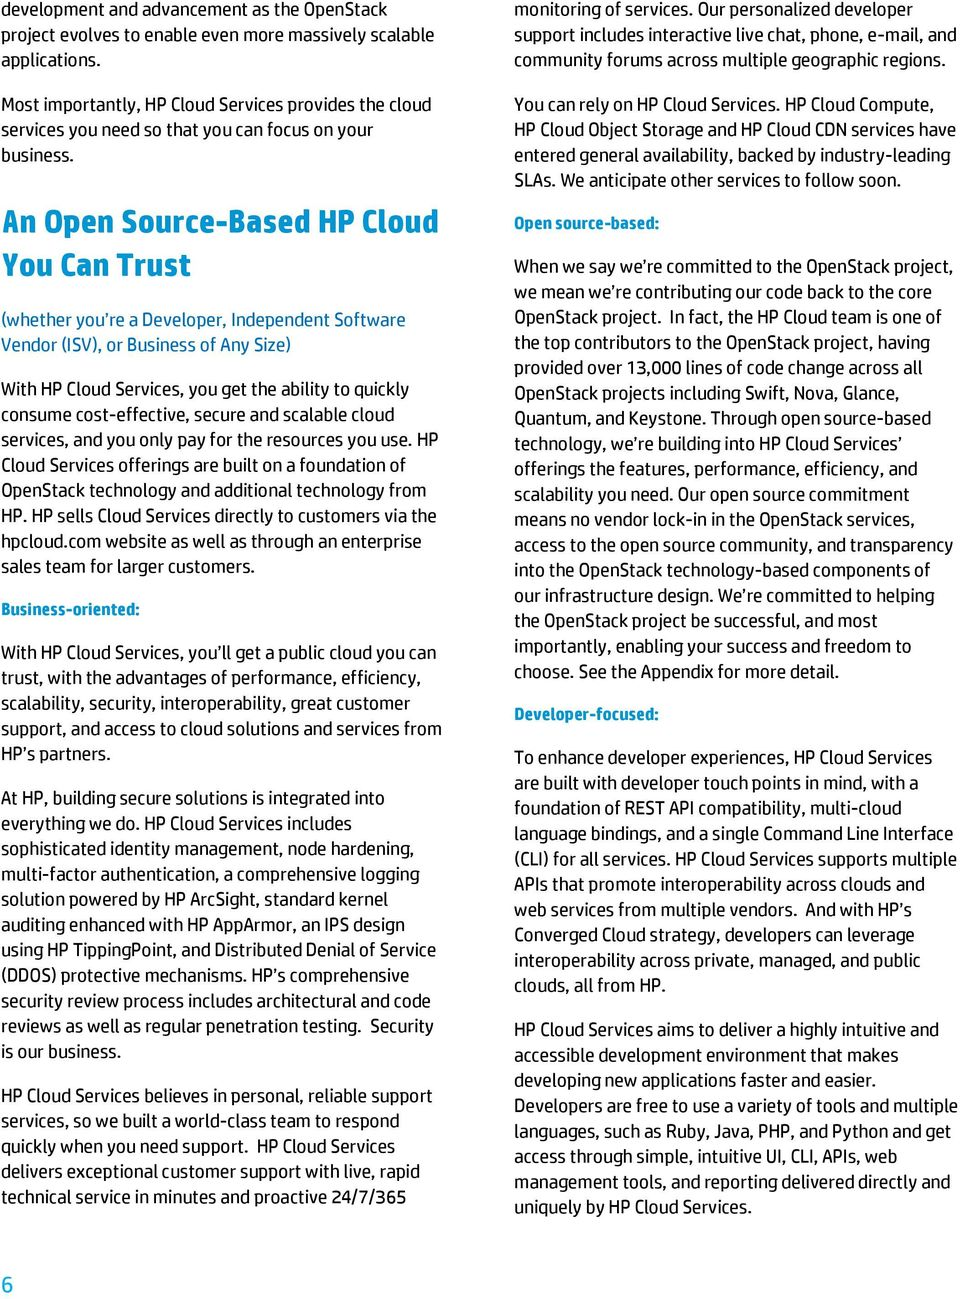 An Open Source-Based HP Cloud You Can Trust (whether you re a Developer, Independent Software Vendor (ISV), or Business of Any Size) With HP Cloud Services, you get the ability to quickly consume